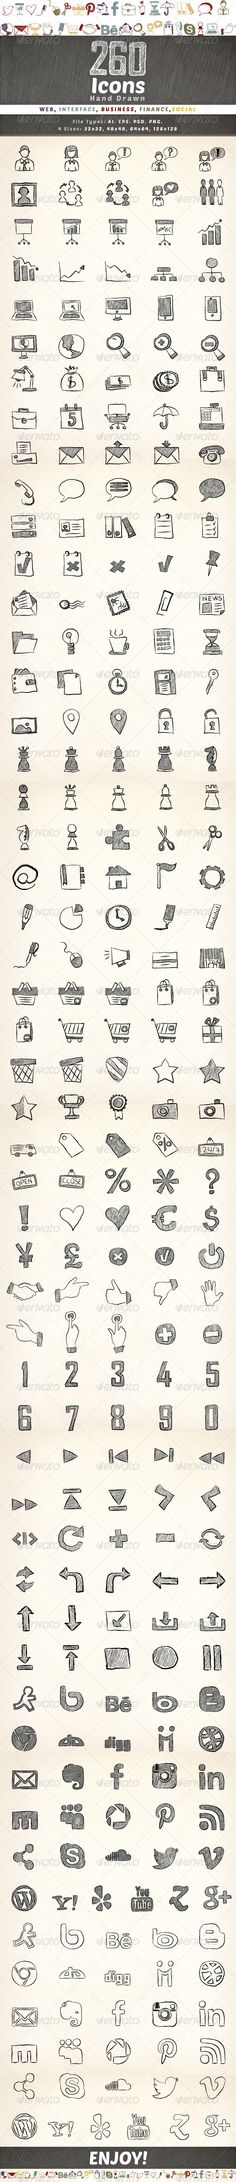 260 Hand Drawn Icons #GraphicRiver Set of 260 hand drawn vector icons. The icons are fully editable and well organized.